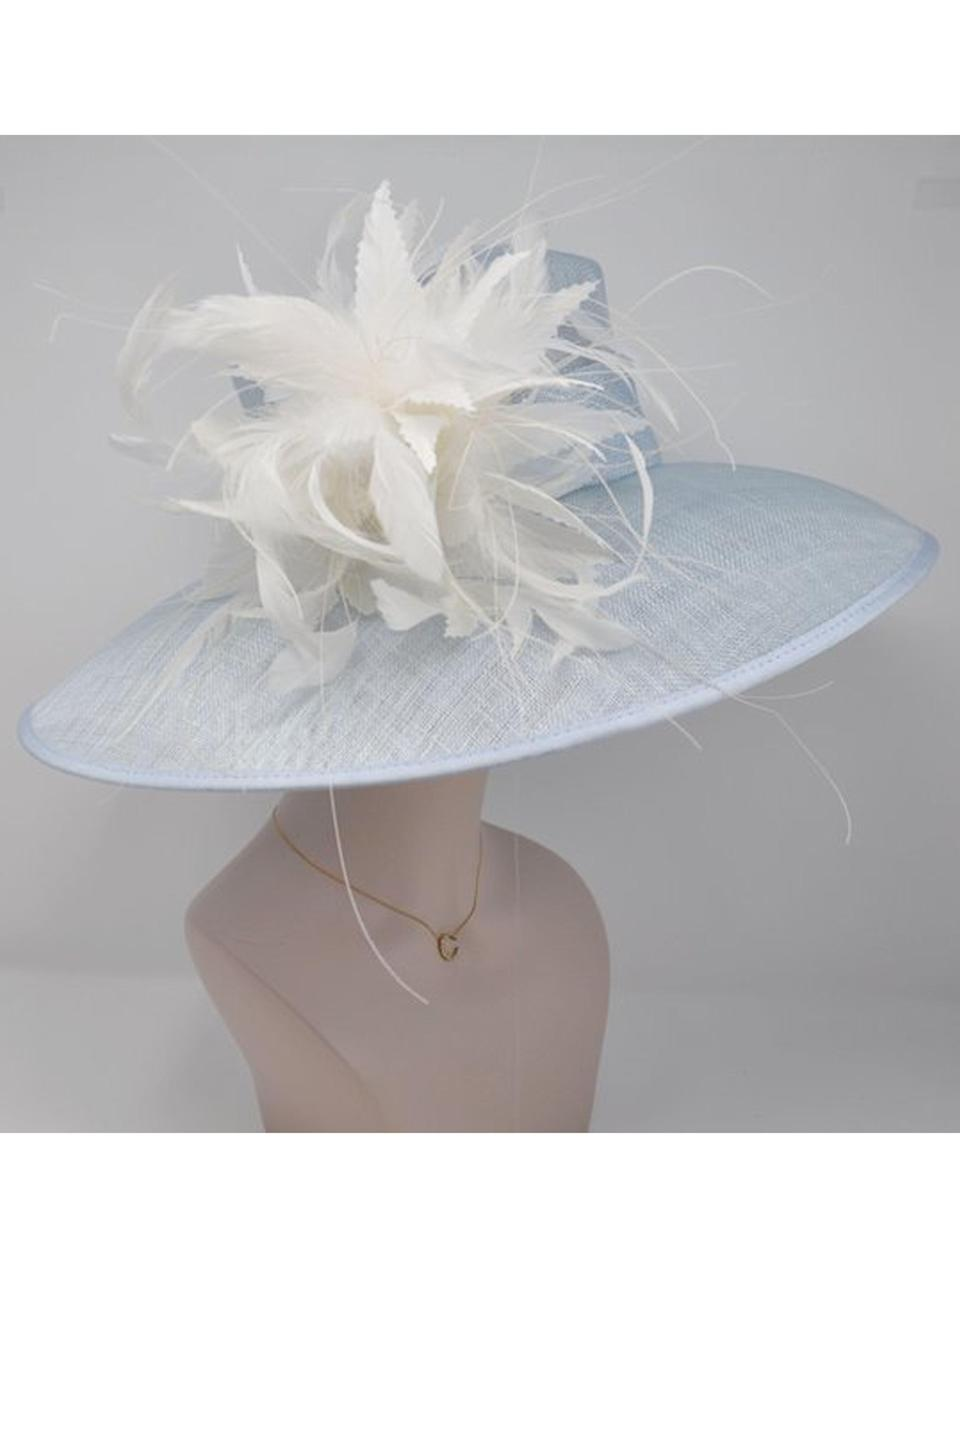 """<p><strong>MissRaceKentuckyHat</strong></p><p>etsy.com</p><p><strong>$145.00</strong></p><p><a href=""""https://go.redirectingat.com?id=74968X1596630&url=https%3A%2F%2Fwww.etsy.com%2Flisting%2F667434827%2Fpowder-blue-with-ivory-feather-flowers&sref=https%3A%2F%2Fwww.townandcountrymag.com%2Fstyle%2Ffashion-trends%2Fg9267914%2Fbest-kentucky-derby-hats-and-fascinator-headbands%2F"""" rel=""""nofollow noopener"""" target=""""_blank"""" data-ylk=""""slk:Shop Now"""" class=""""link rapid-noclick-resp"""">Shop Now</a></p><p>Between the powder blue hue and the elegant feathers, this hat is sure to turn heads. </p>"""